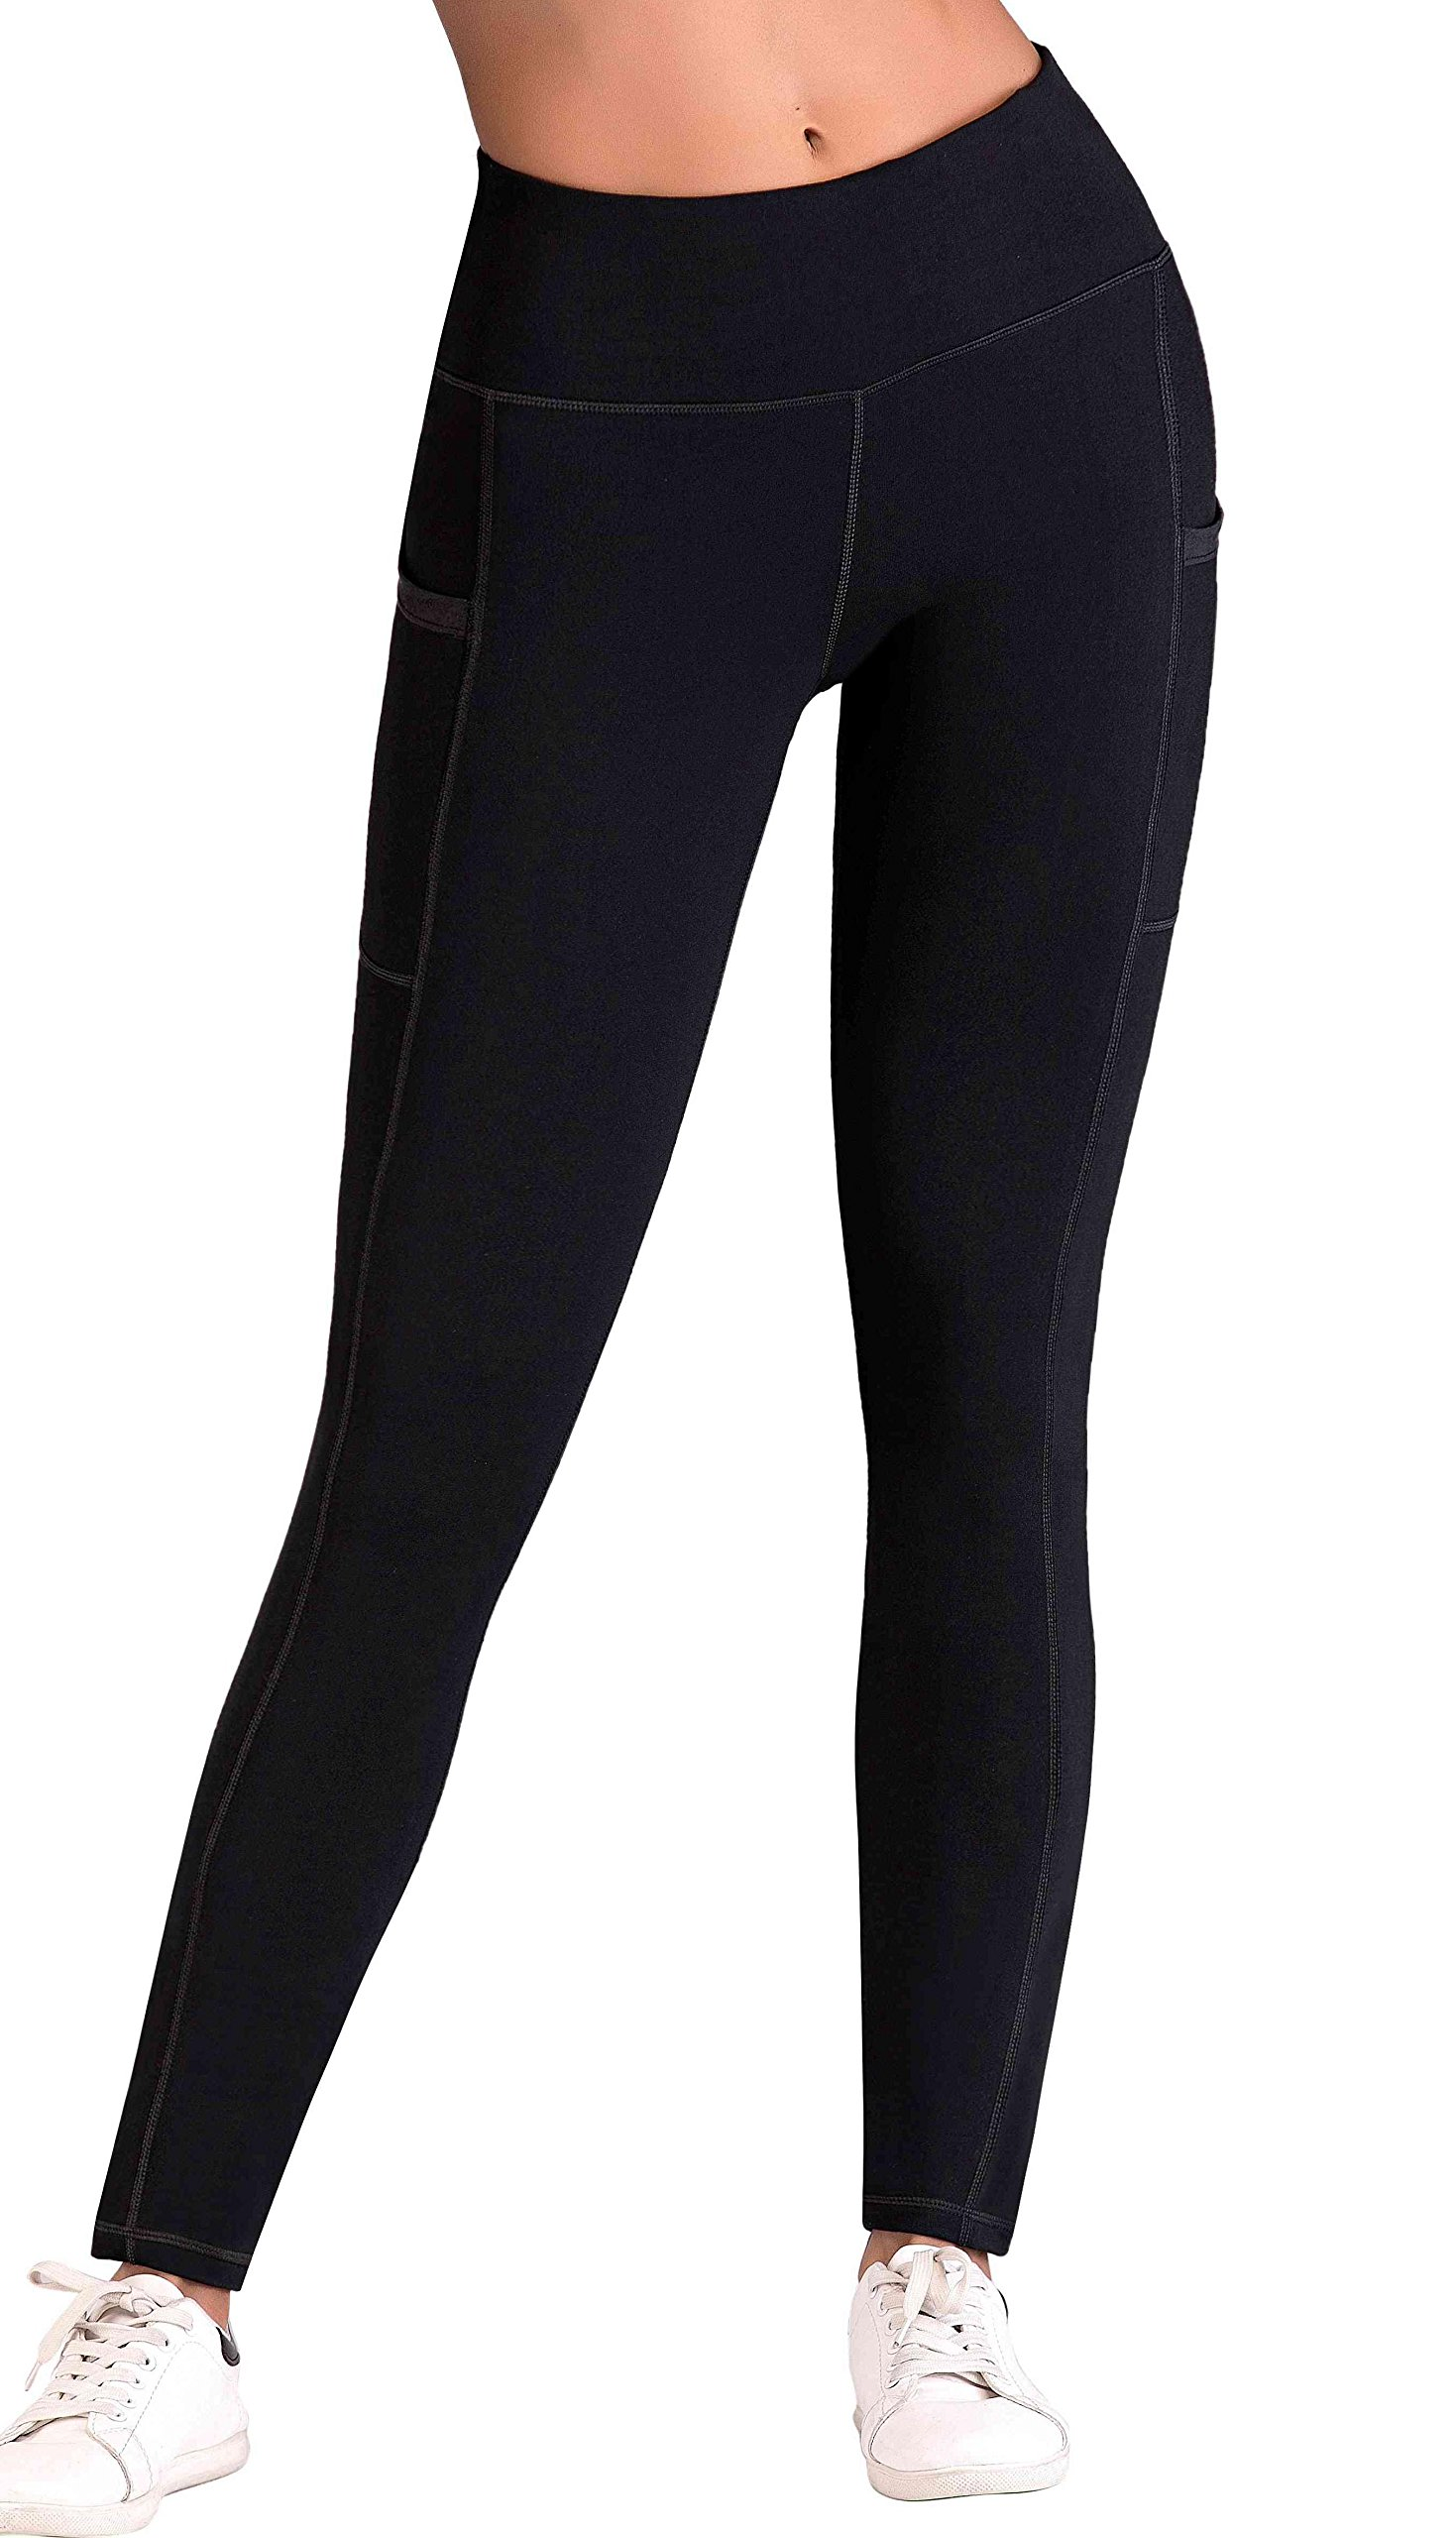 81G28CMowUL - IUGA Yoga Pants with Pockets, Workout Running Leggings with Pockets for Women